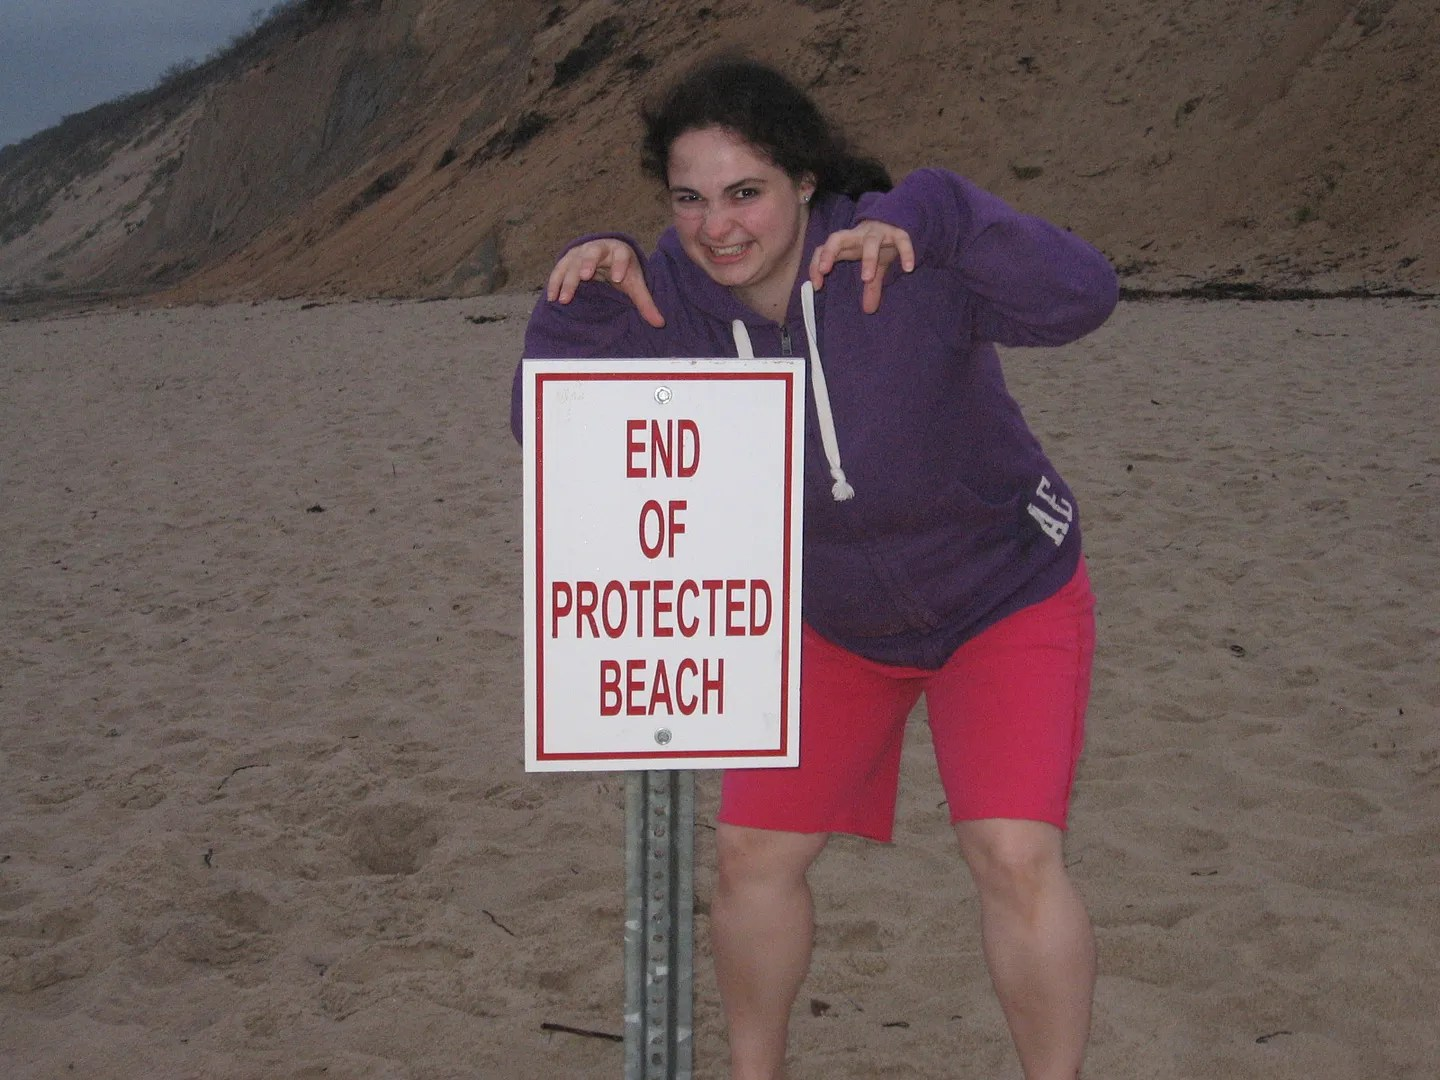 woman creeping behind sign on beach that says